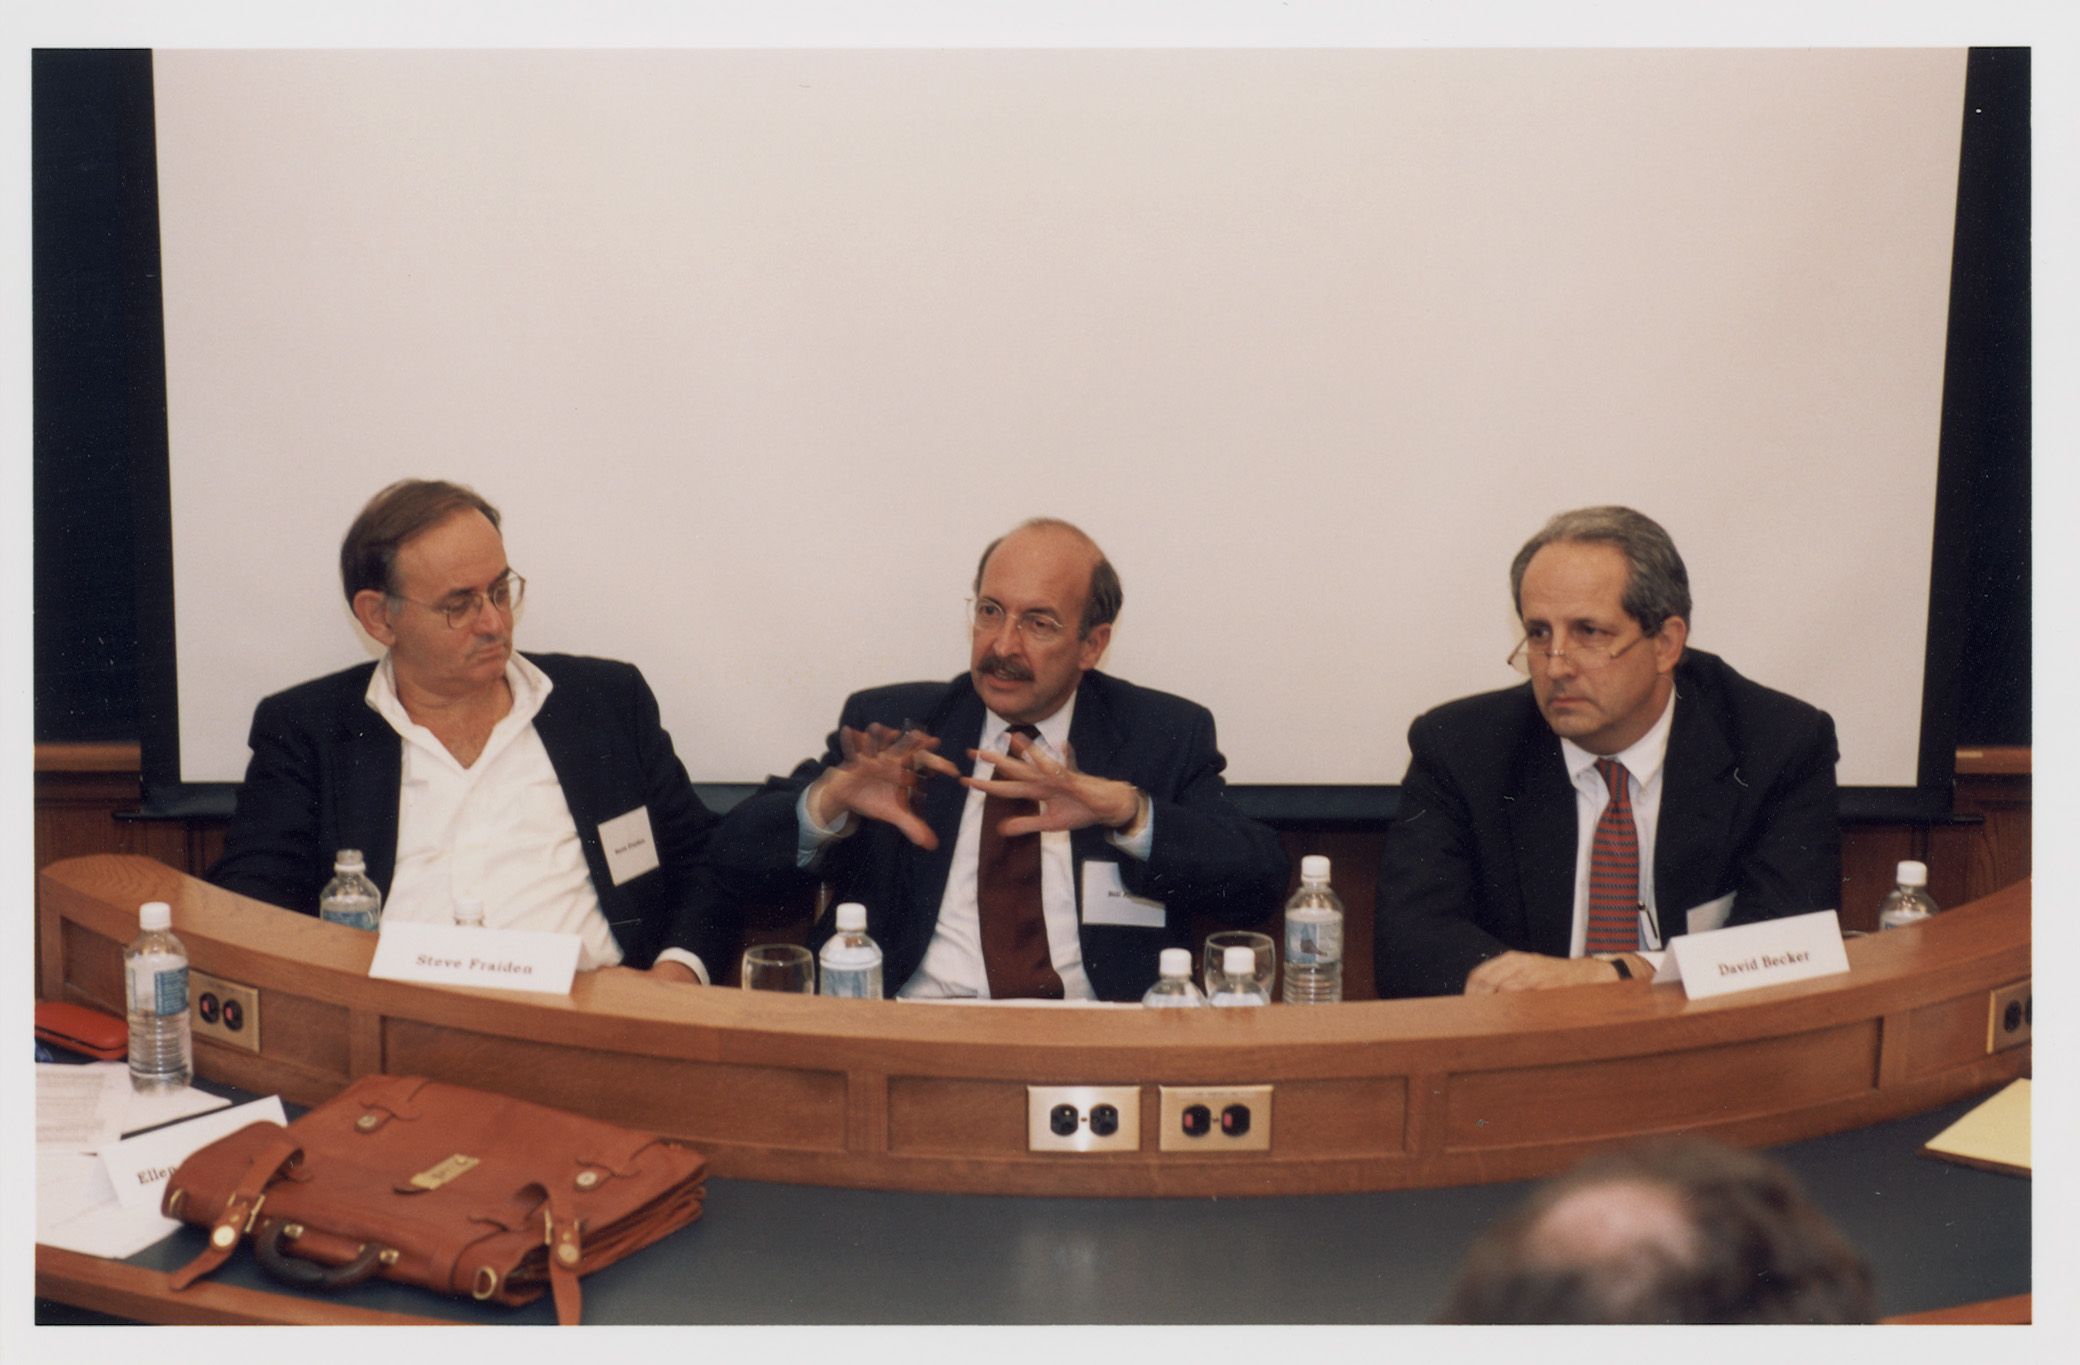 Stephen Fraidin '64, NYU Law Prof. William T. Allen, and David M. Becker